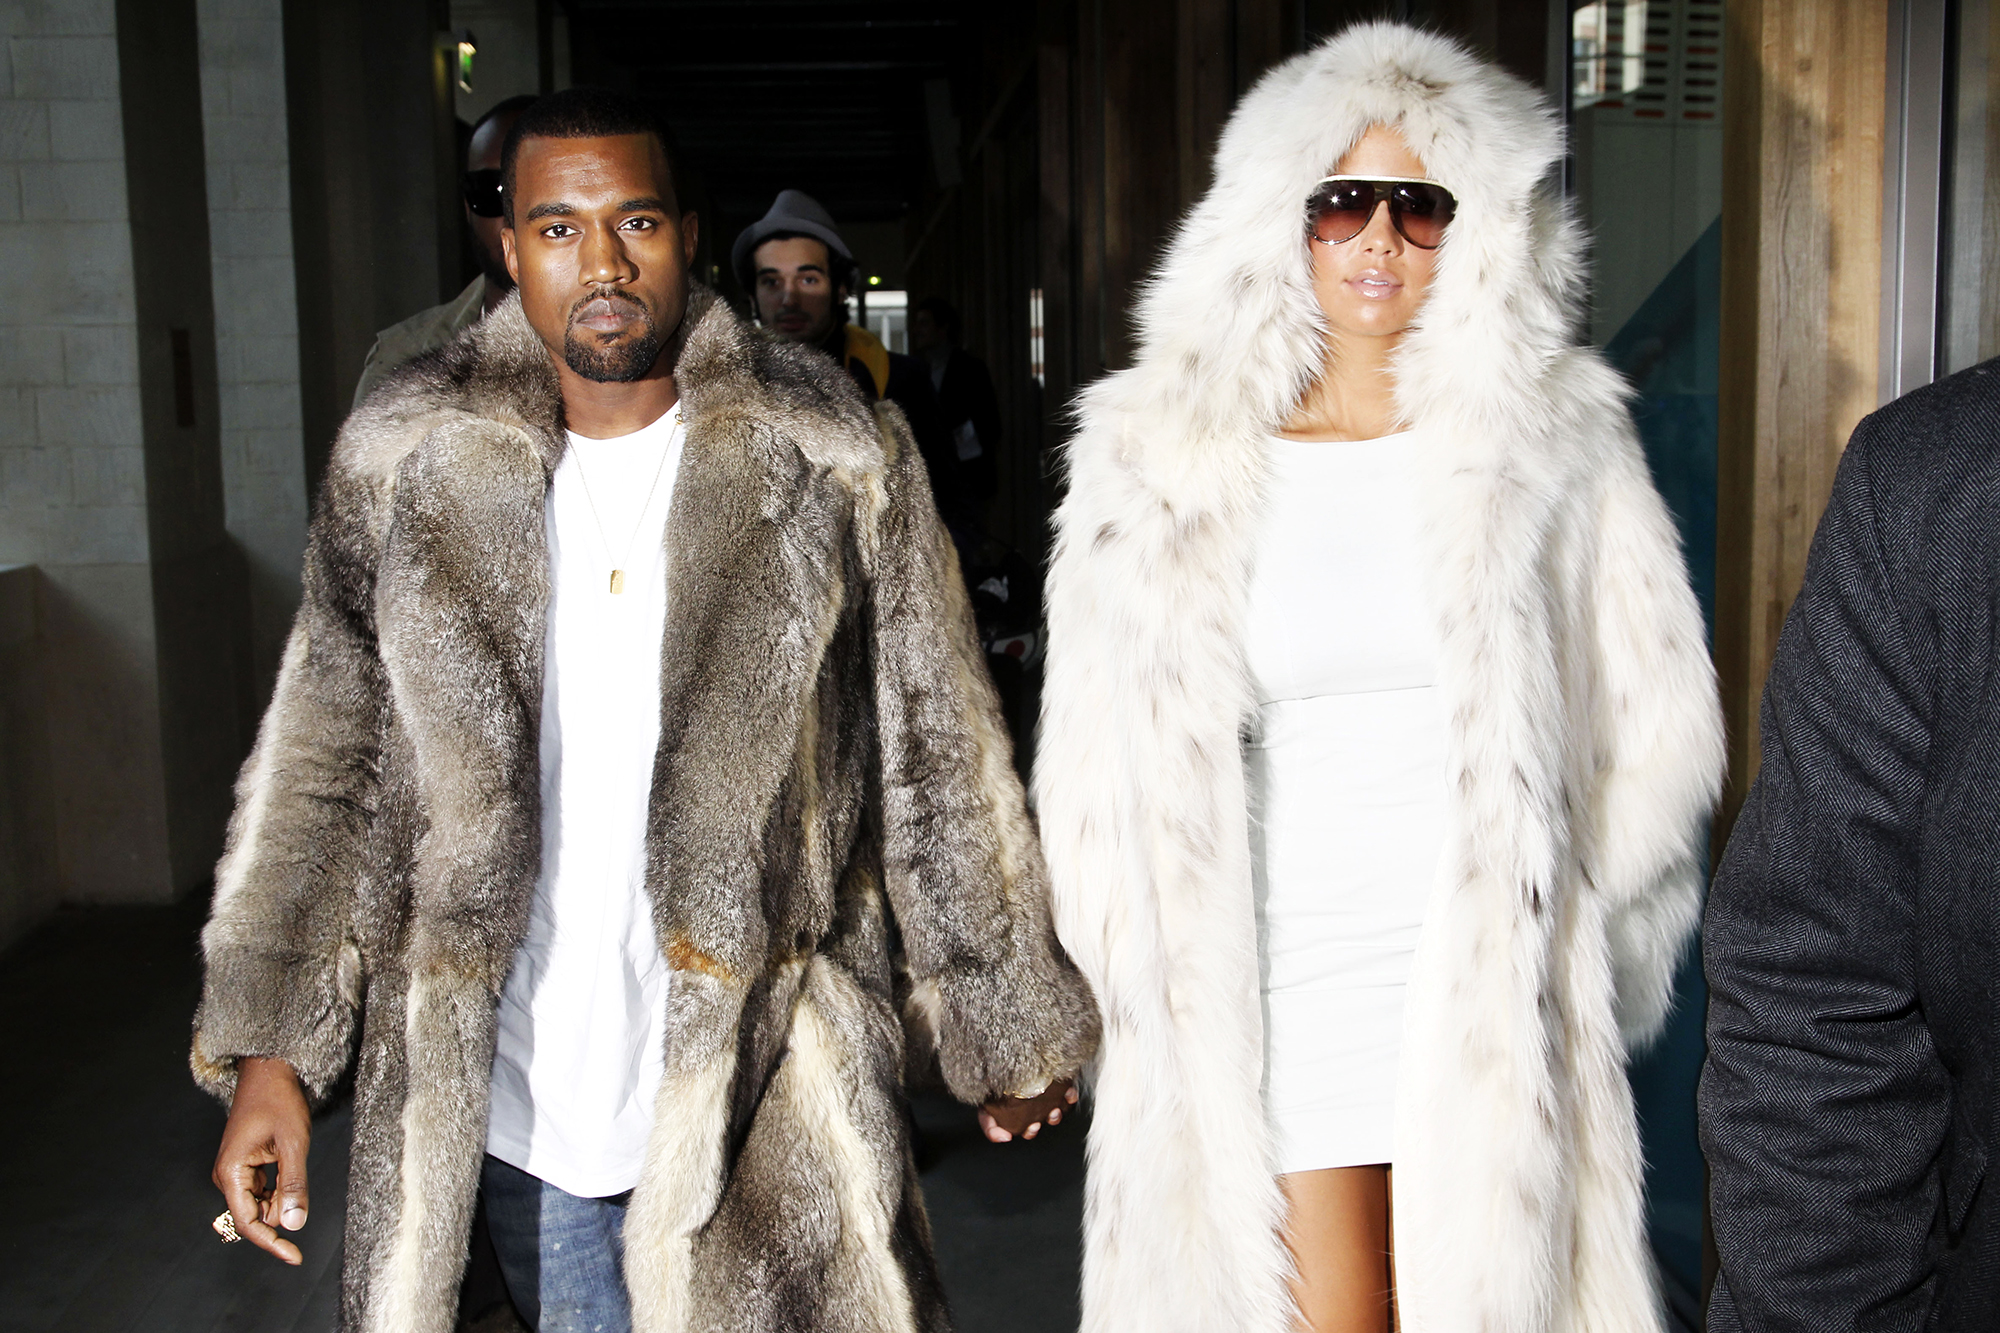 Kanye West and Amber Rose at The Louis Vuitton Fashion Show Autumn Winter 2010-2011 Menswear Collection In Paris, on Jan. 21, 2010.